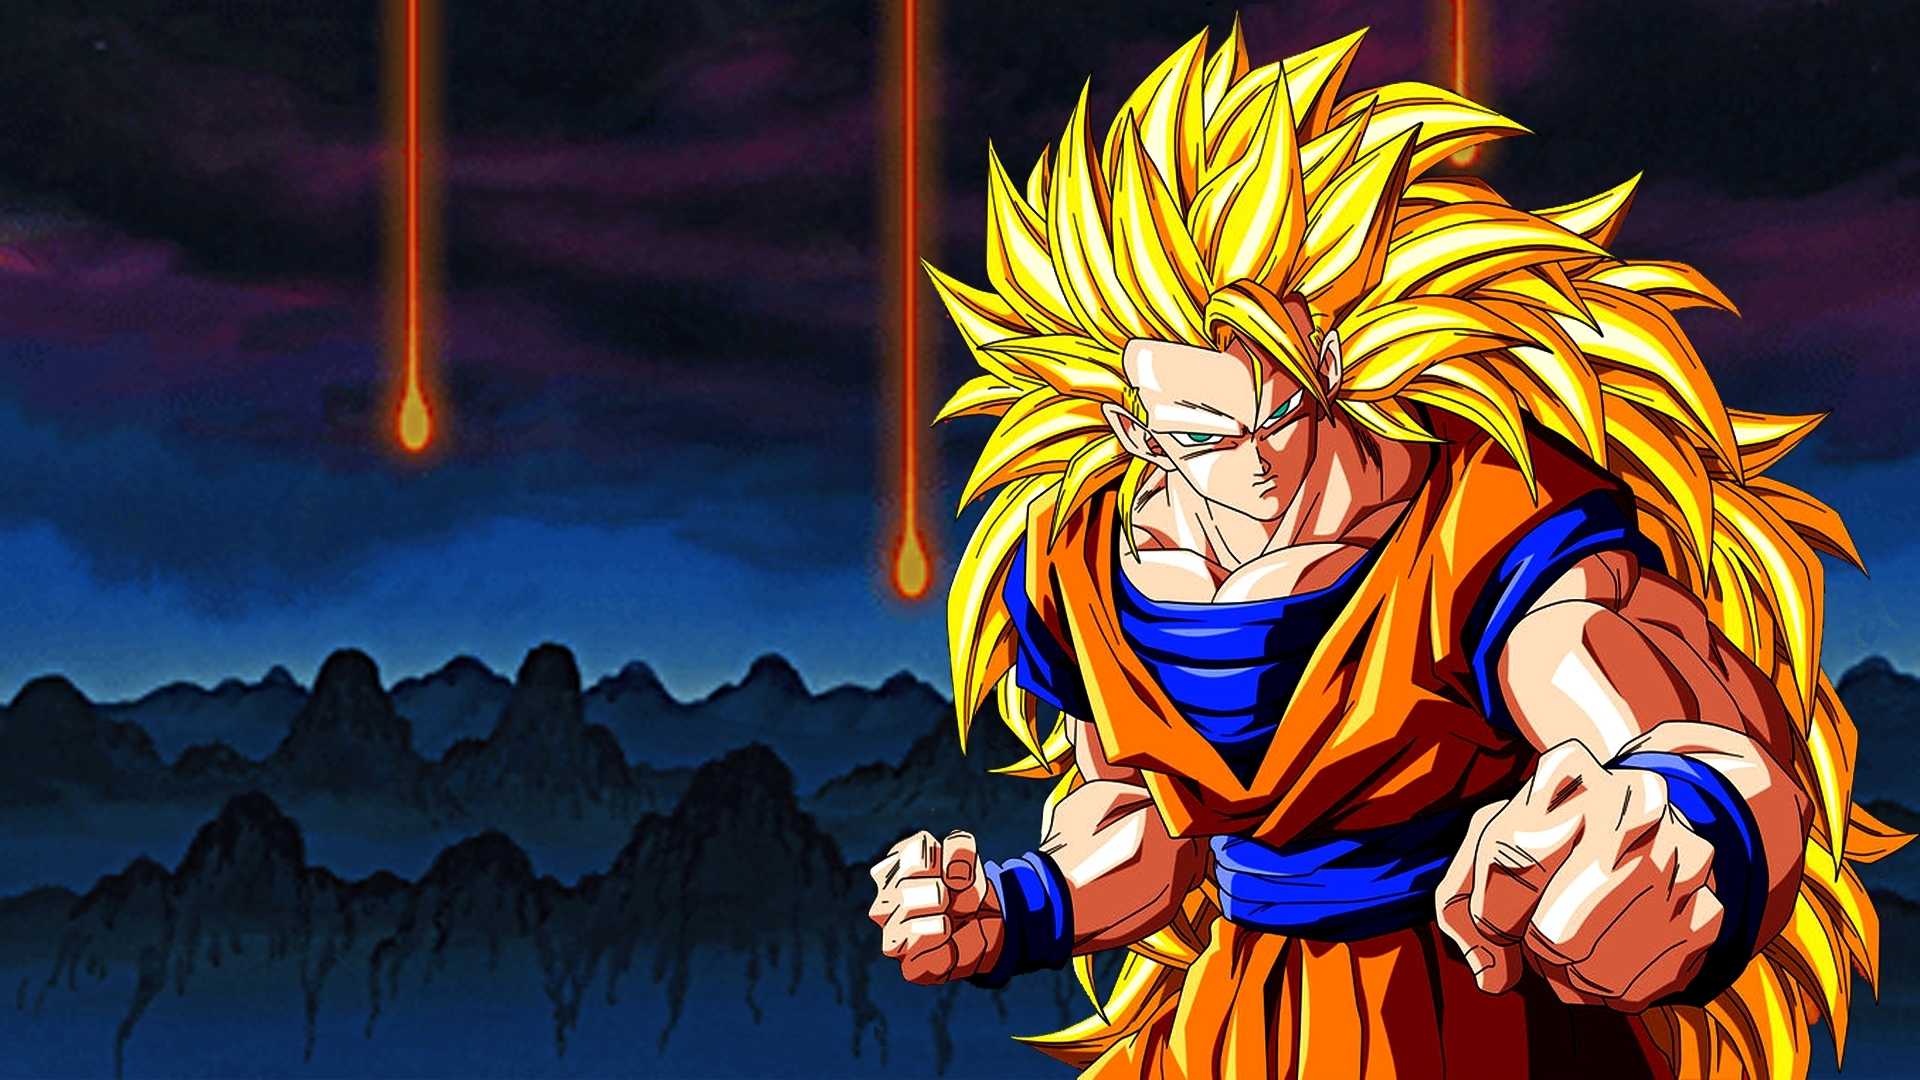 10 Latest Dragon Ball Z Goku Hd Wallpapers FULL HD 1920×1080 For PC Background